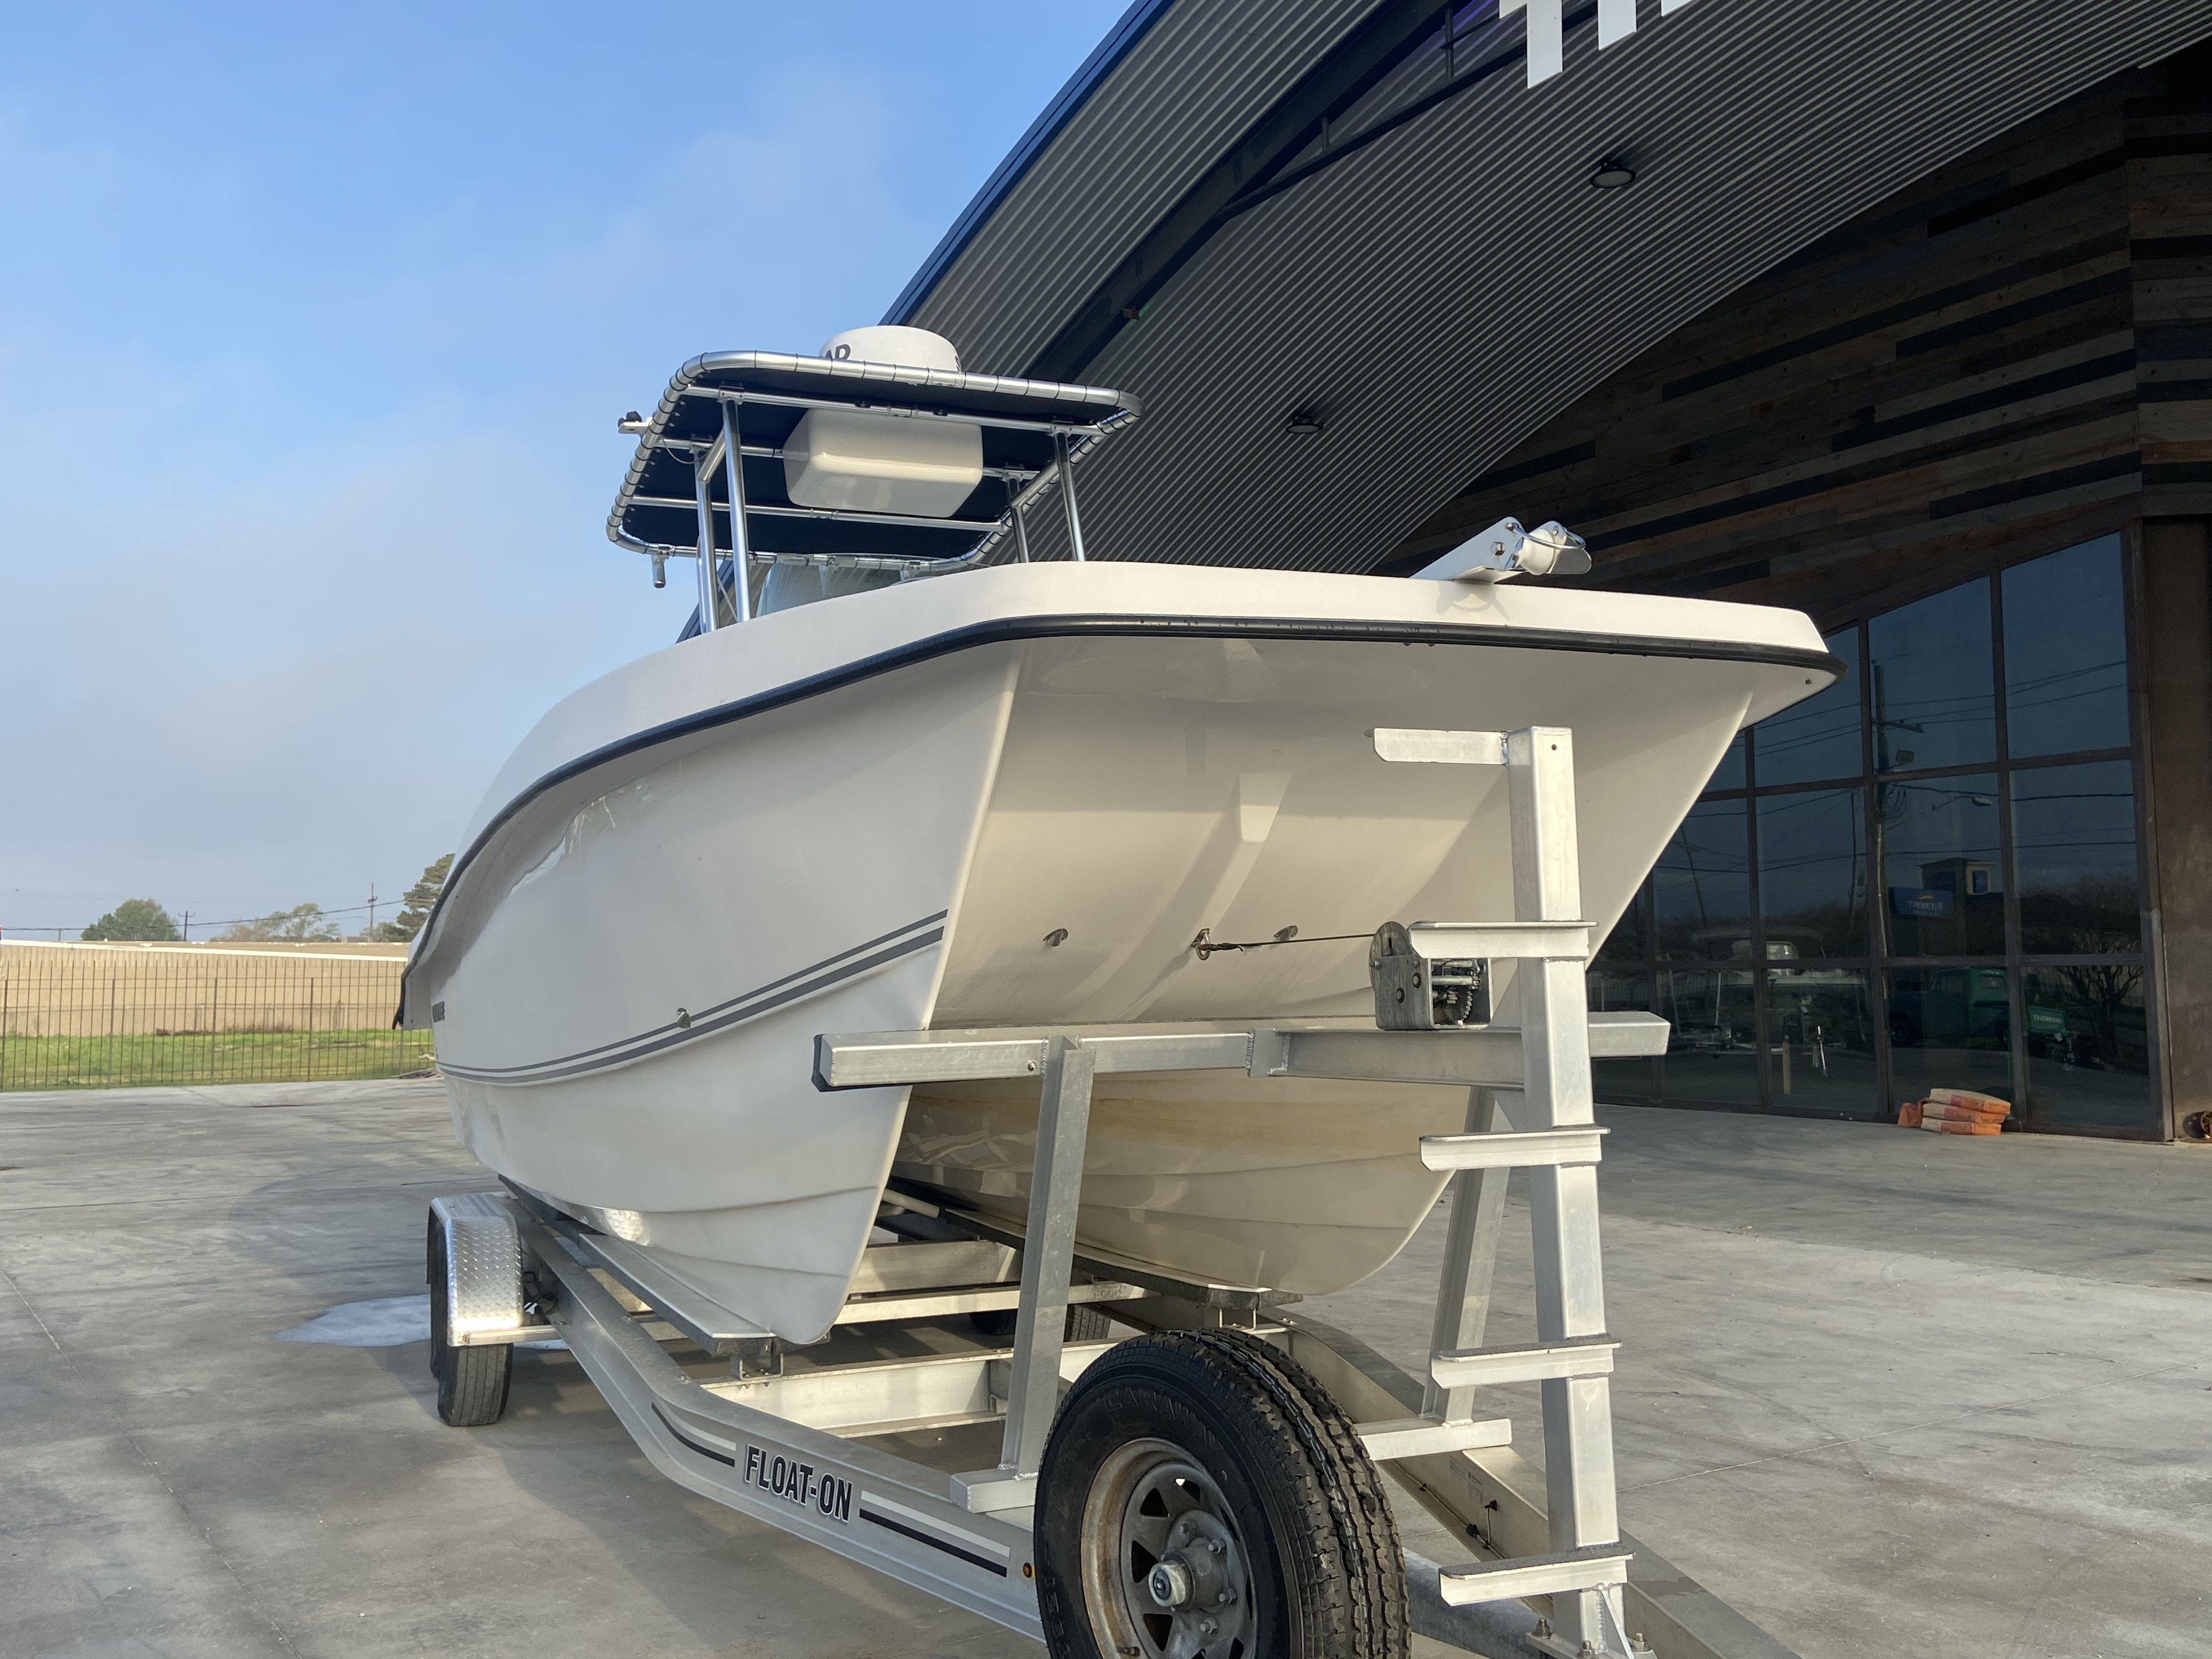 2020 Twin Vee boat for sale, model of the boat is 26 Pro & Image # 4 of 24